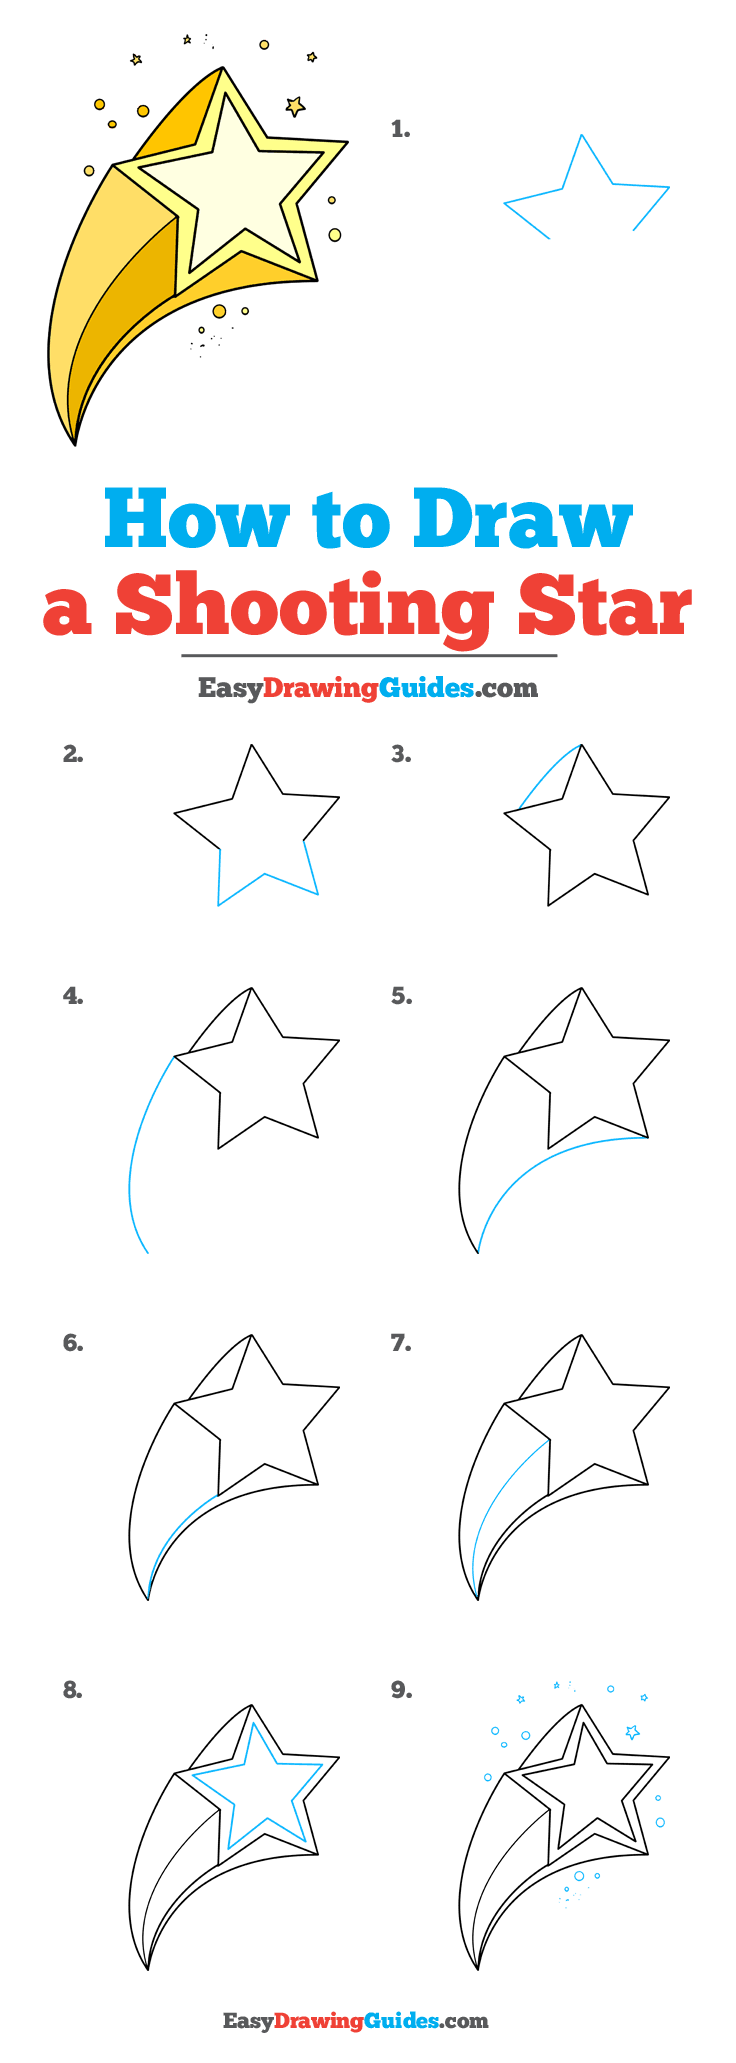 How to Draw a Shooting Star Step by Step Tutorial Image